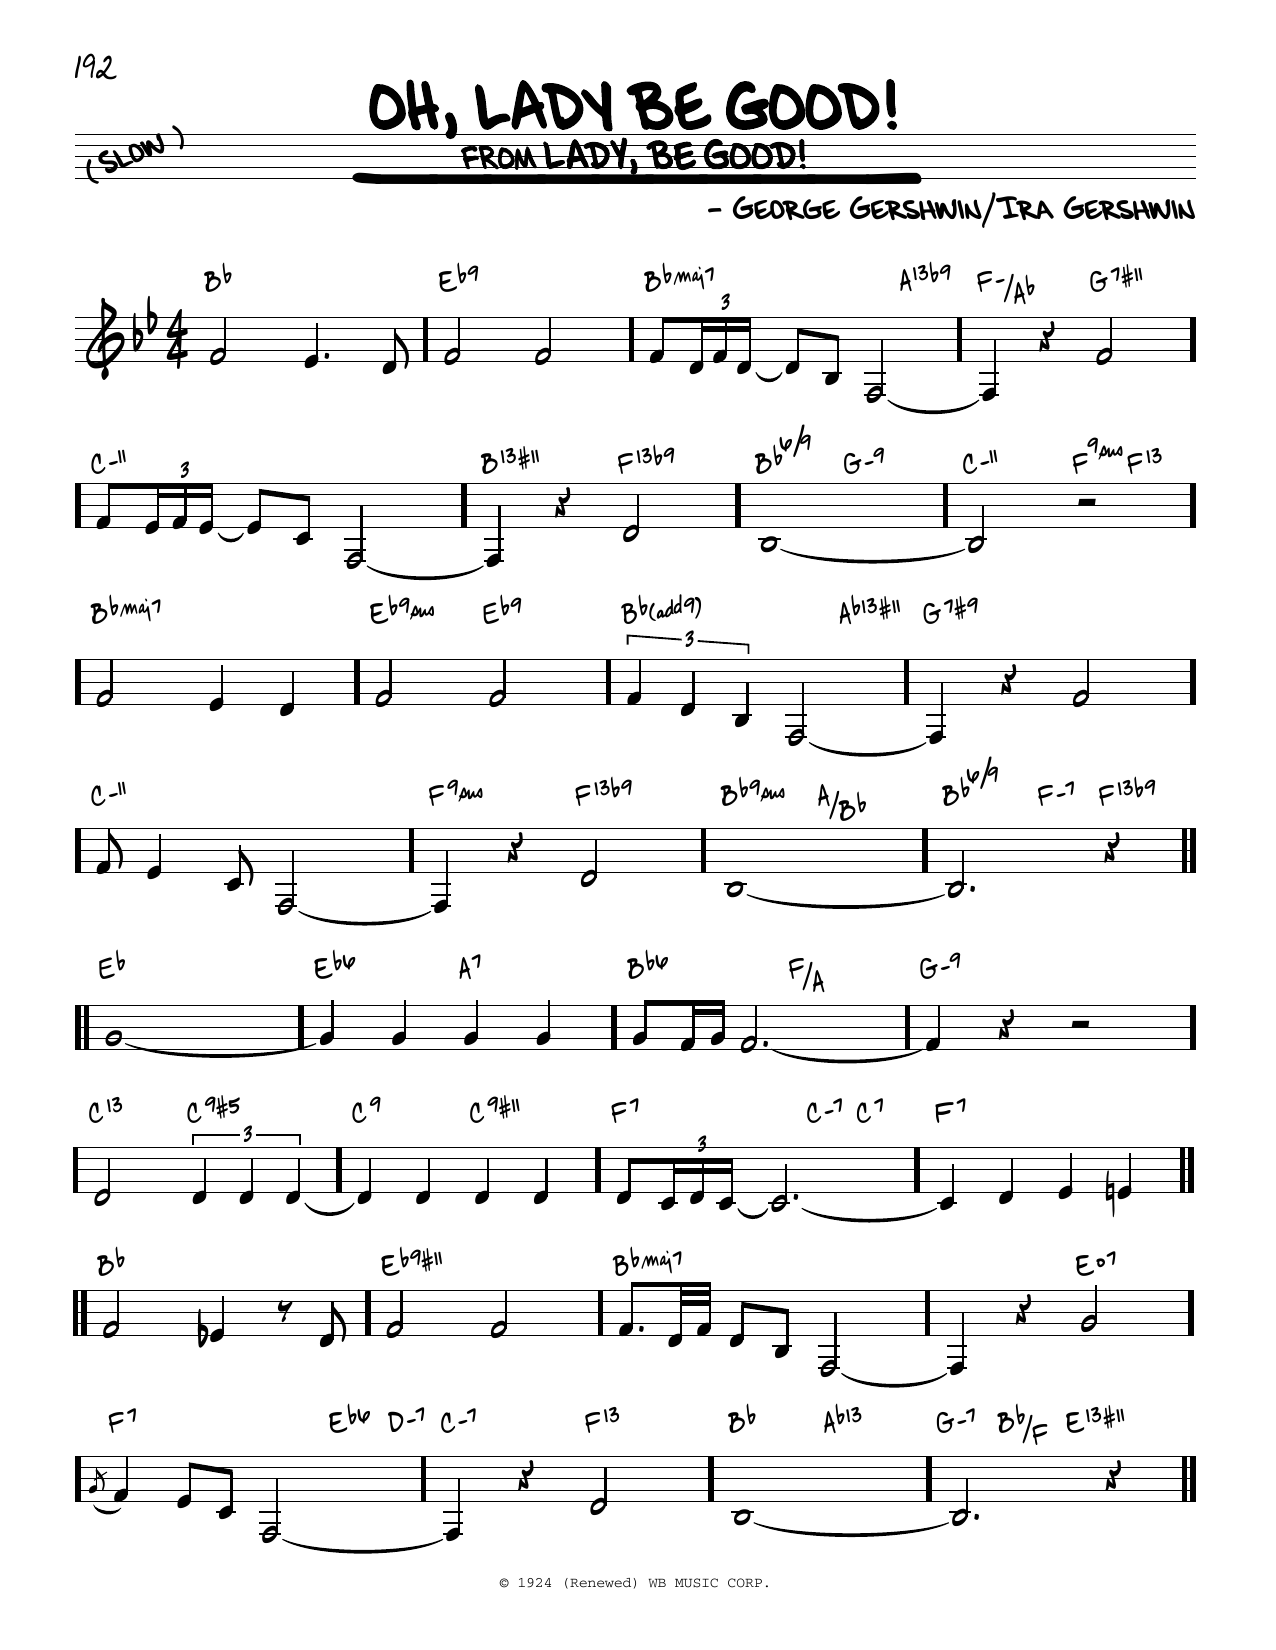 George Gershwin Oh, Lady Be Good! sheet music notes and chords. Download Printable PDF.